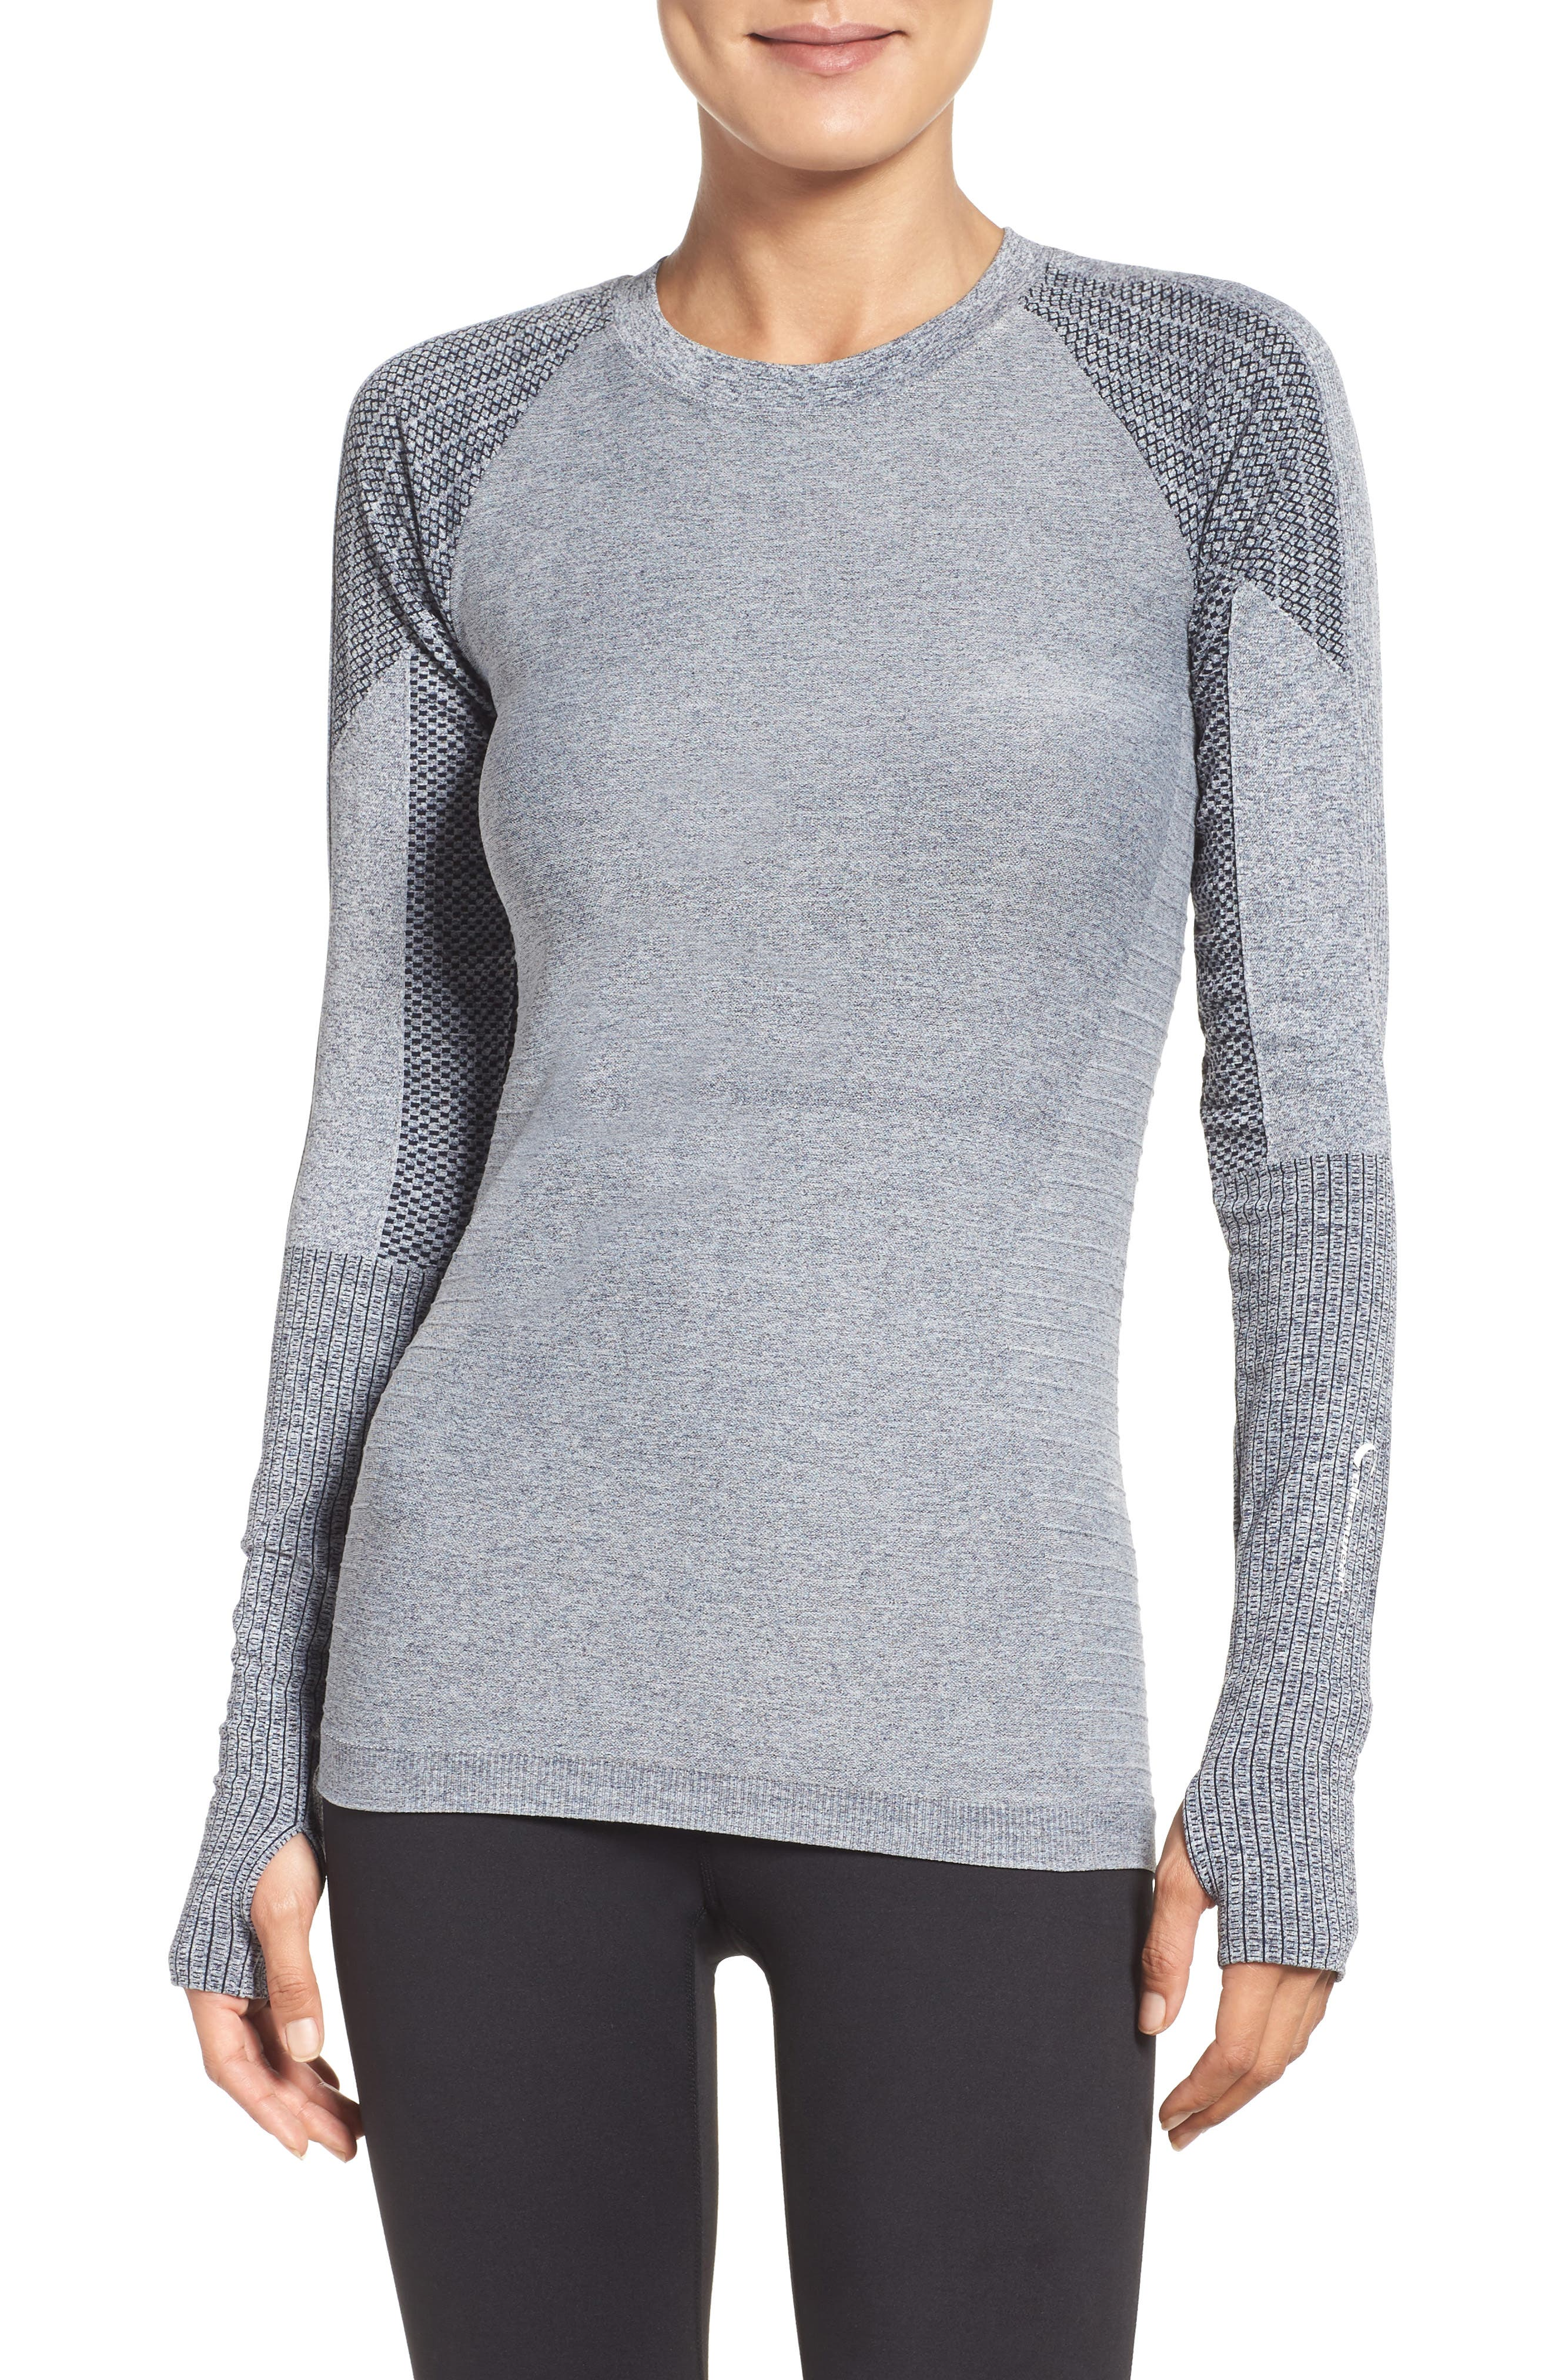 Dynamic Running Top,                         Main,                         color,